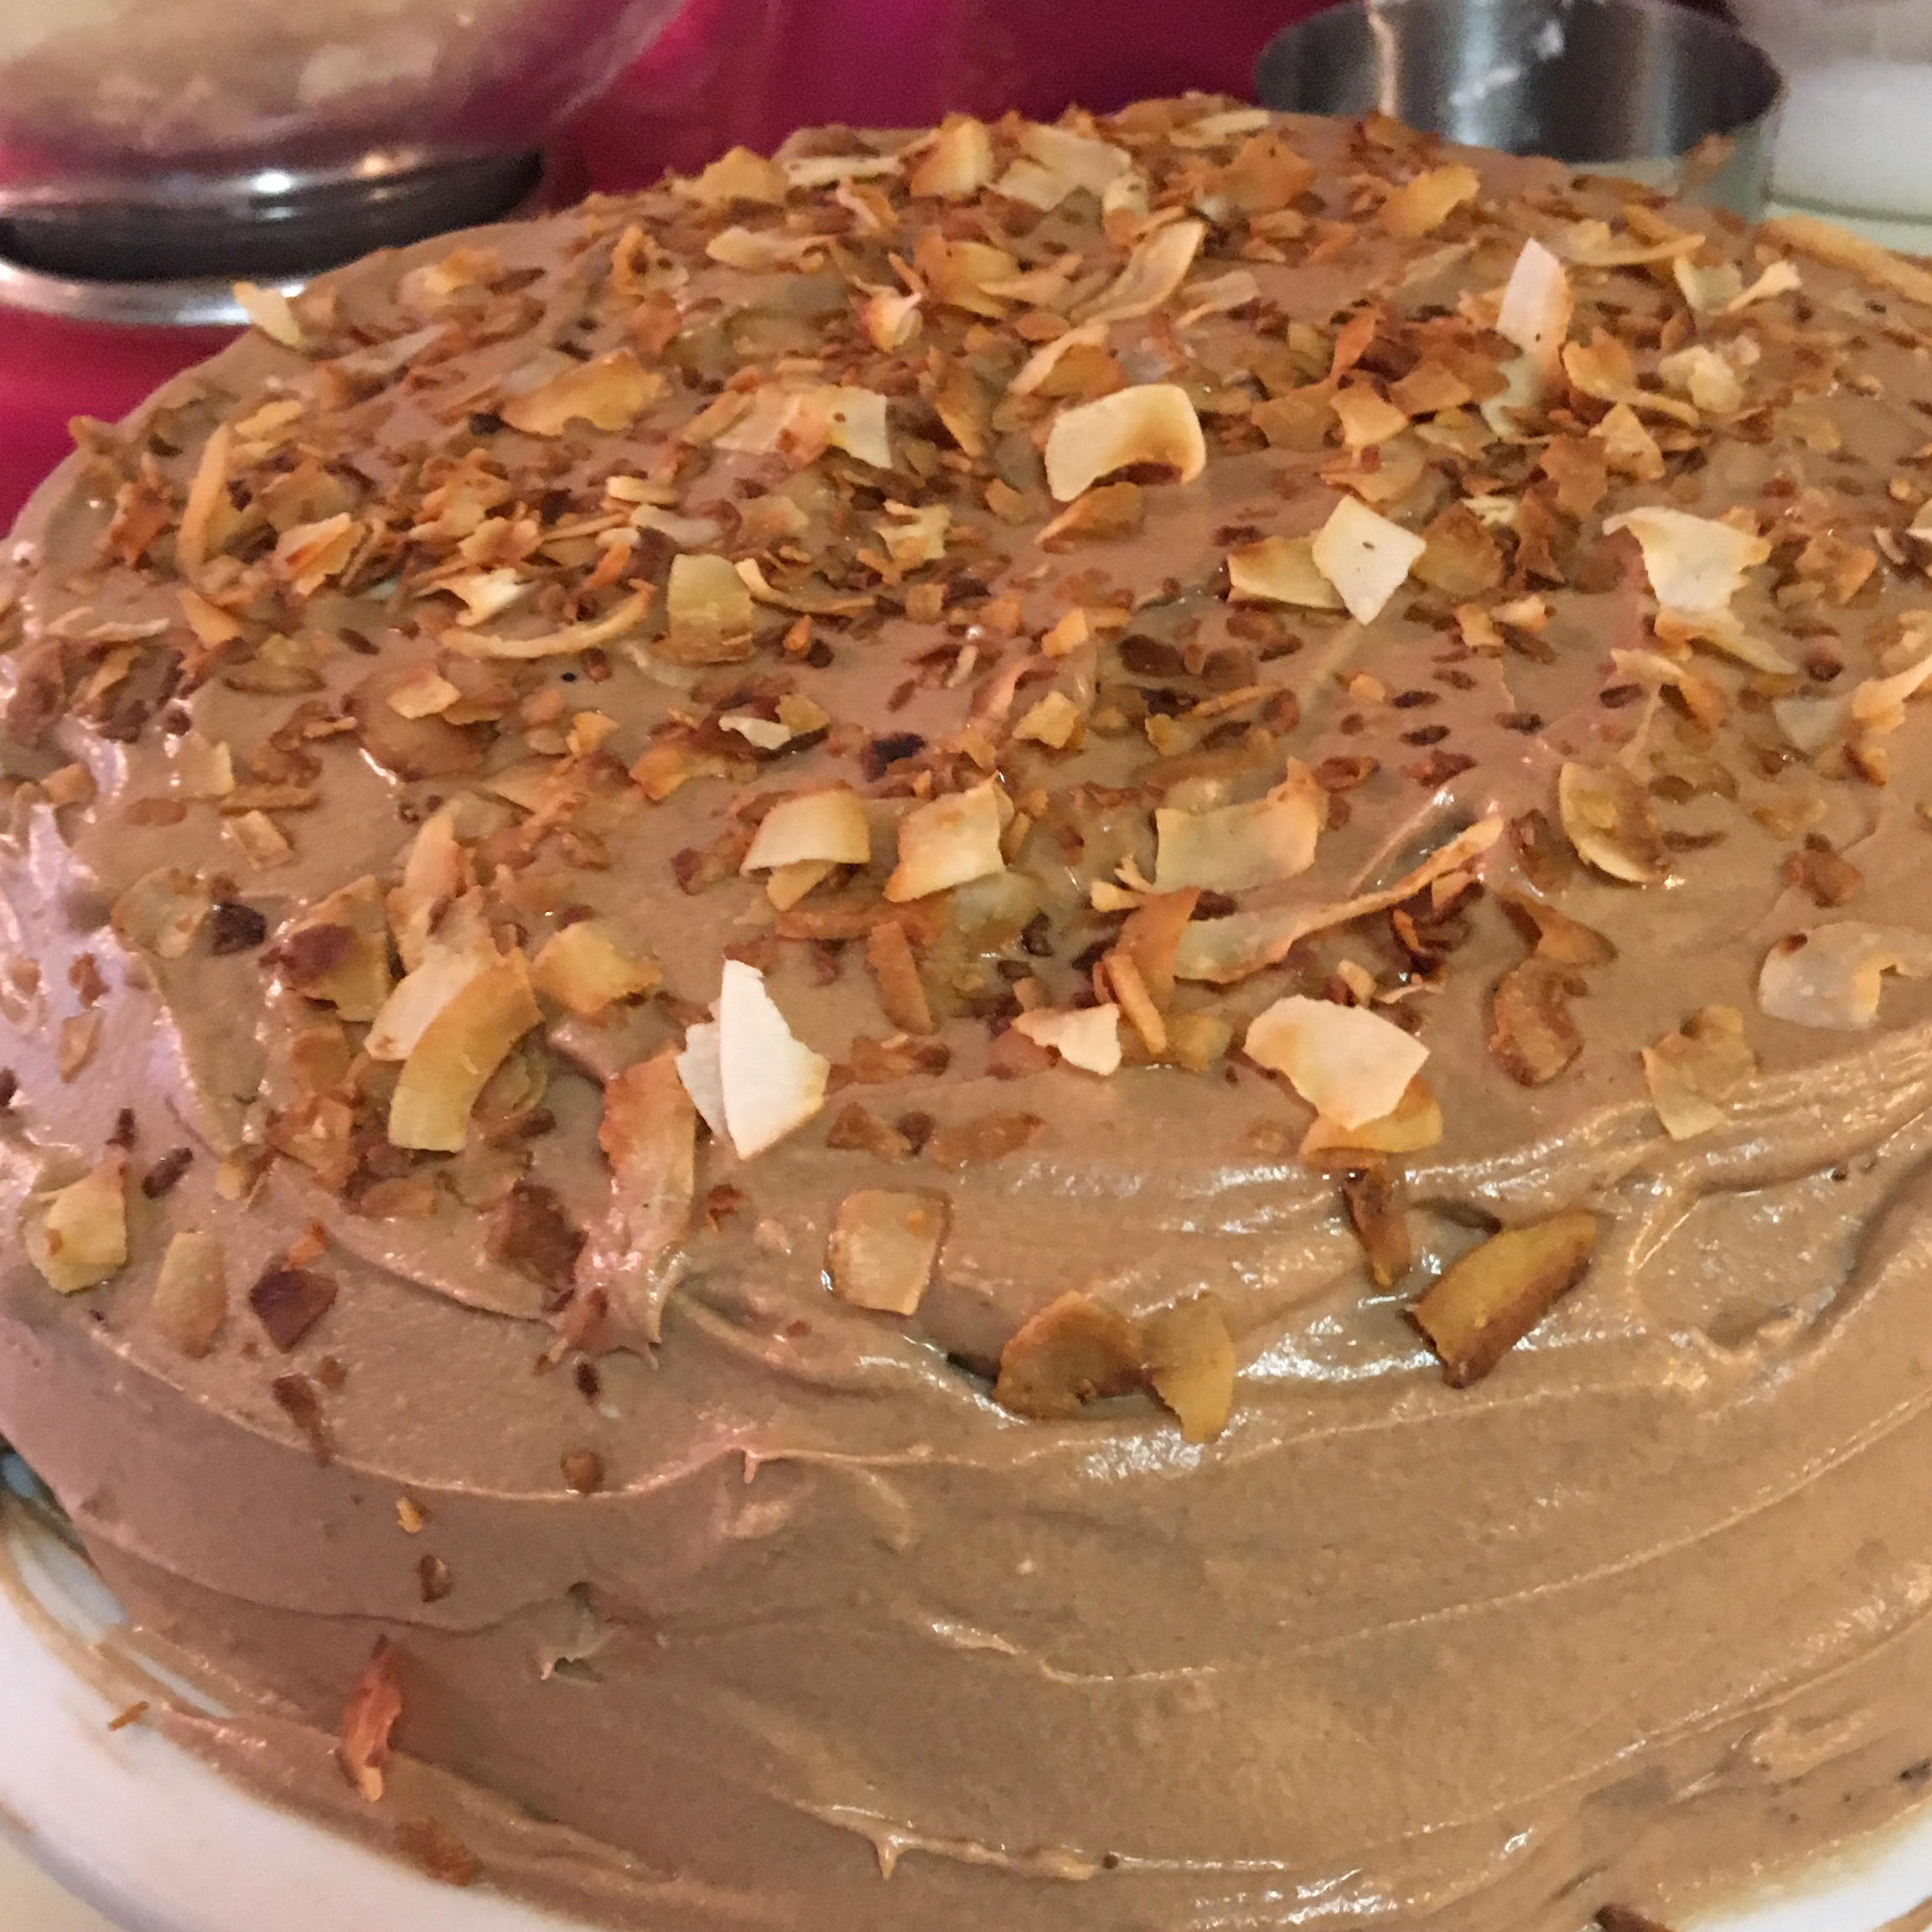 Chocolate Coconut Cream Cheese Frosting Evelyn Kellogg